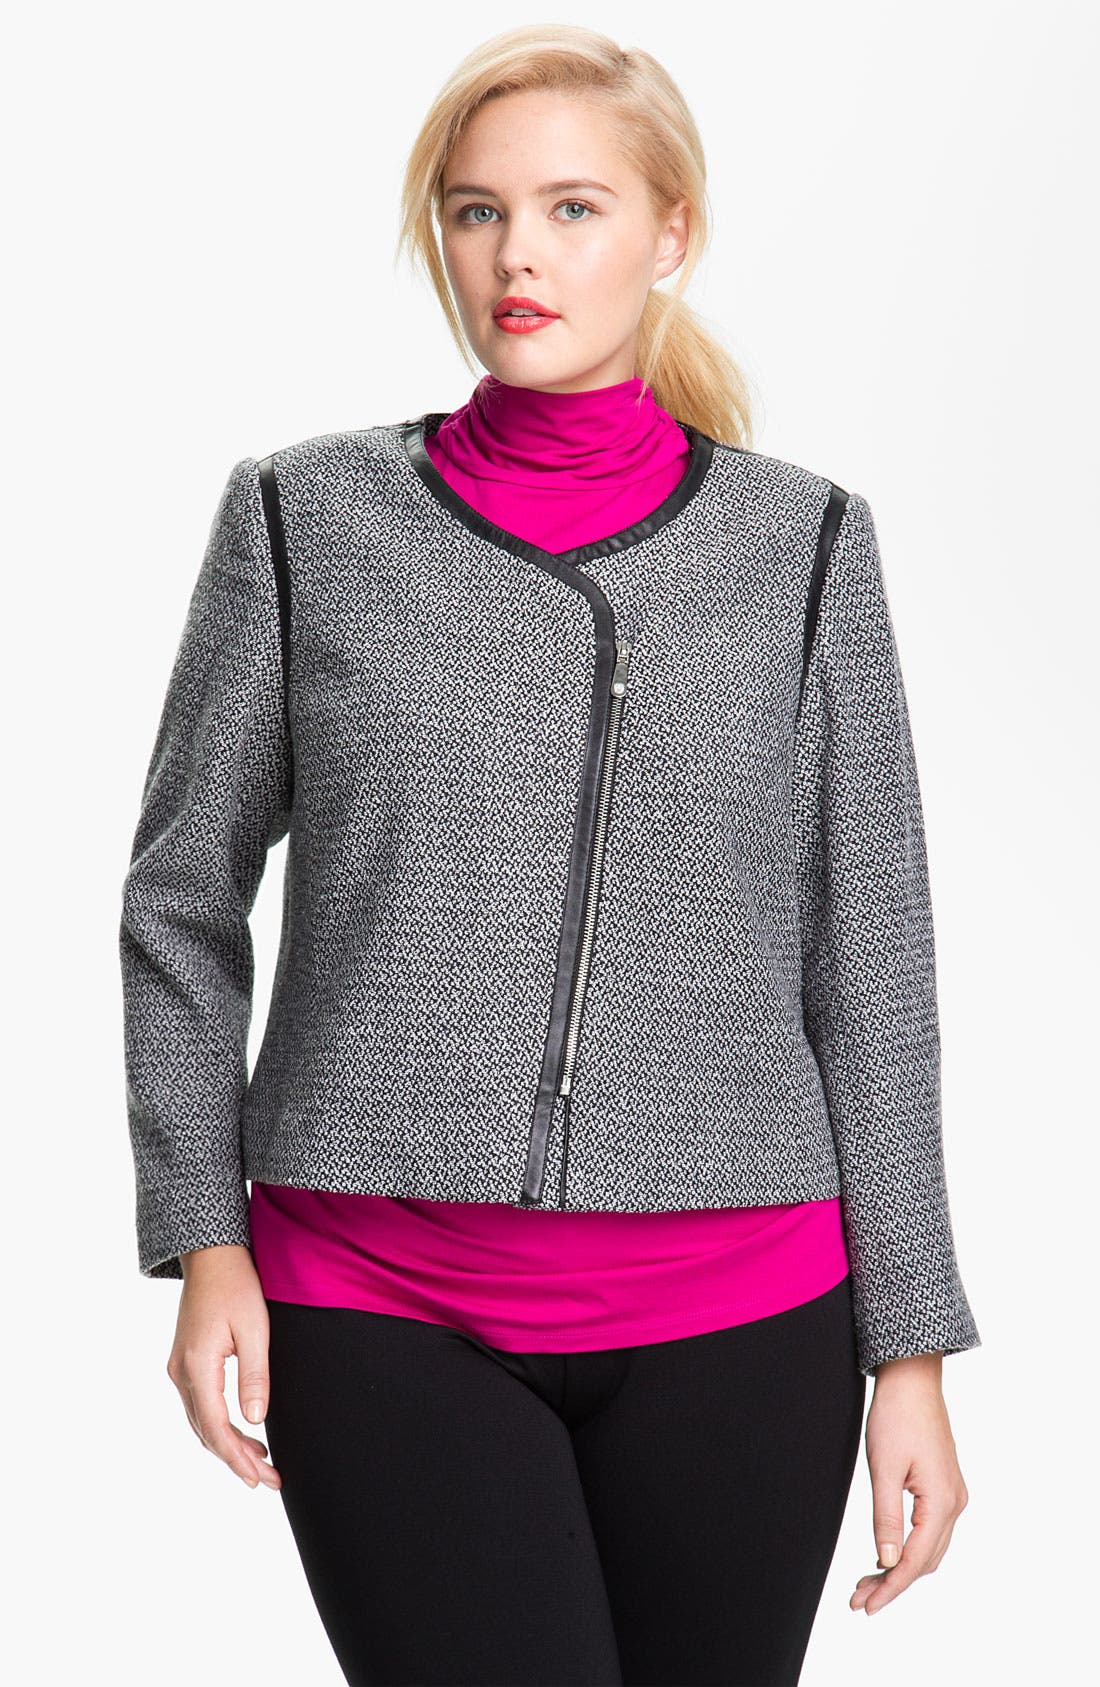 Main Image - Vince Camuto Faux Leather Trim Tweed Jacket (Plus)